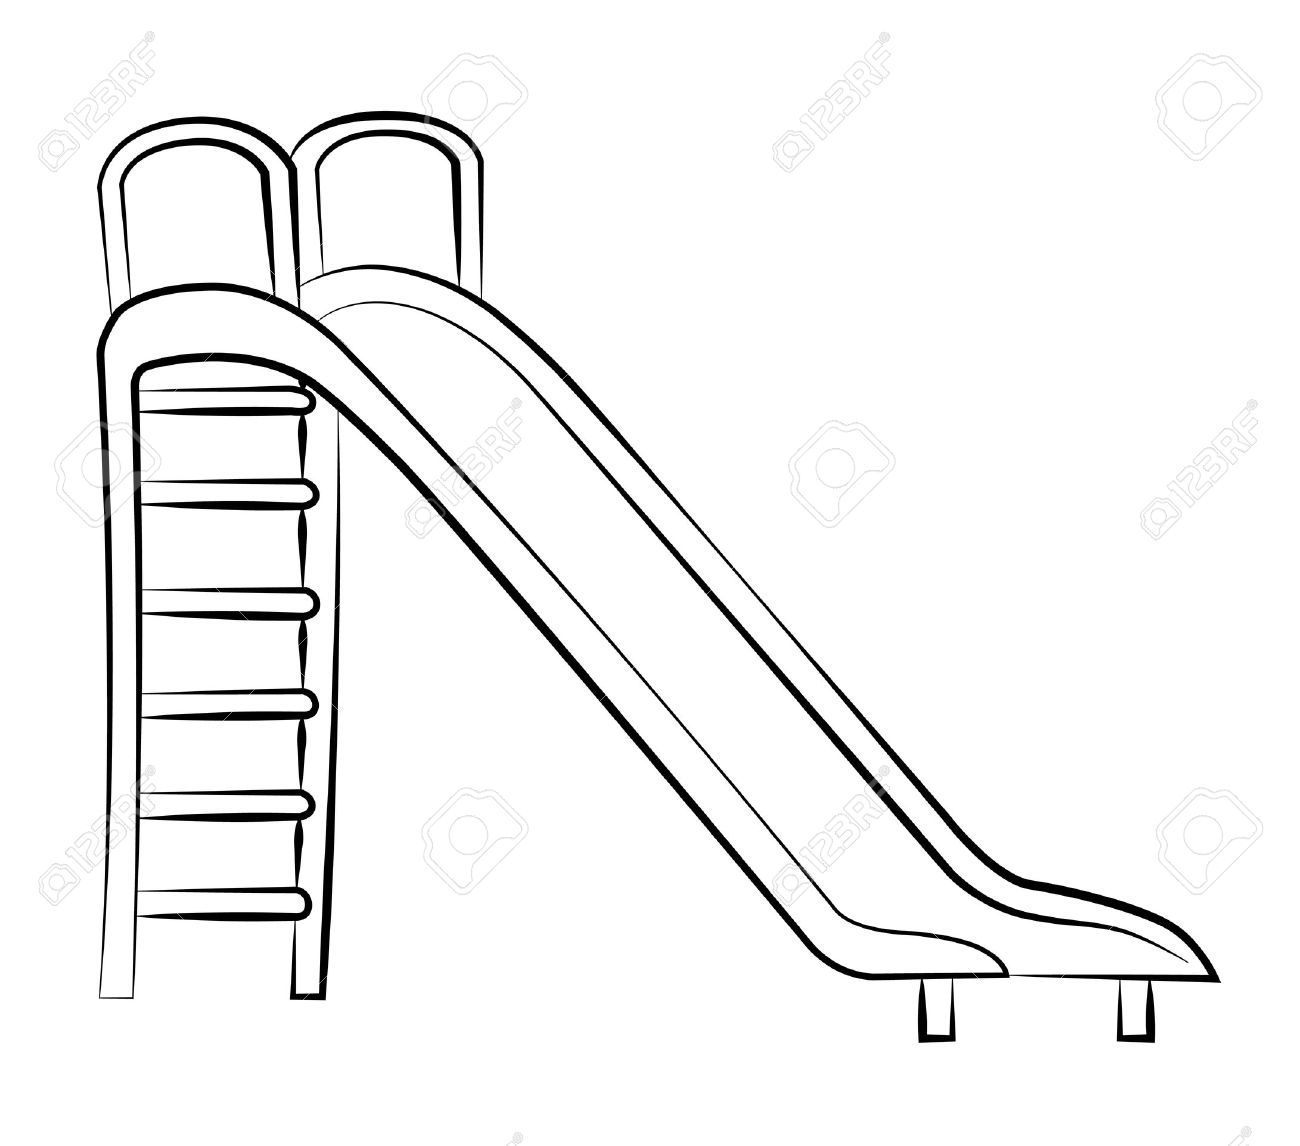 Slide clipart playground slide. Drawing at getdrawings com